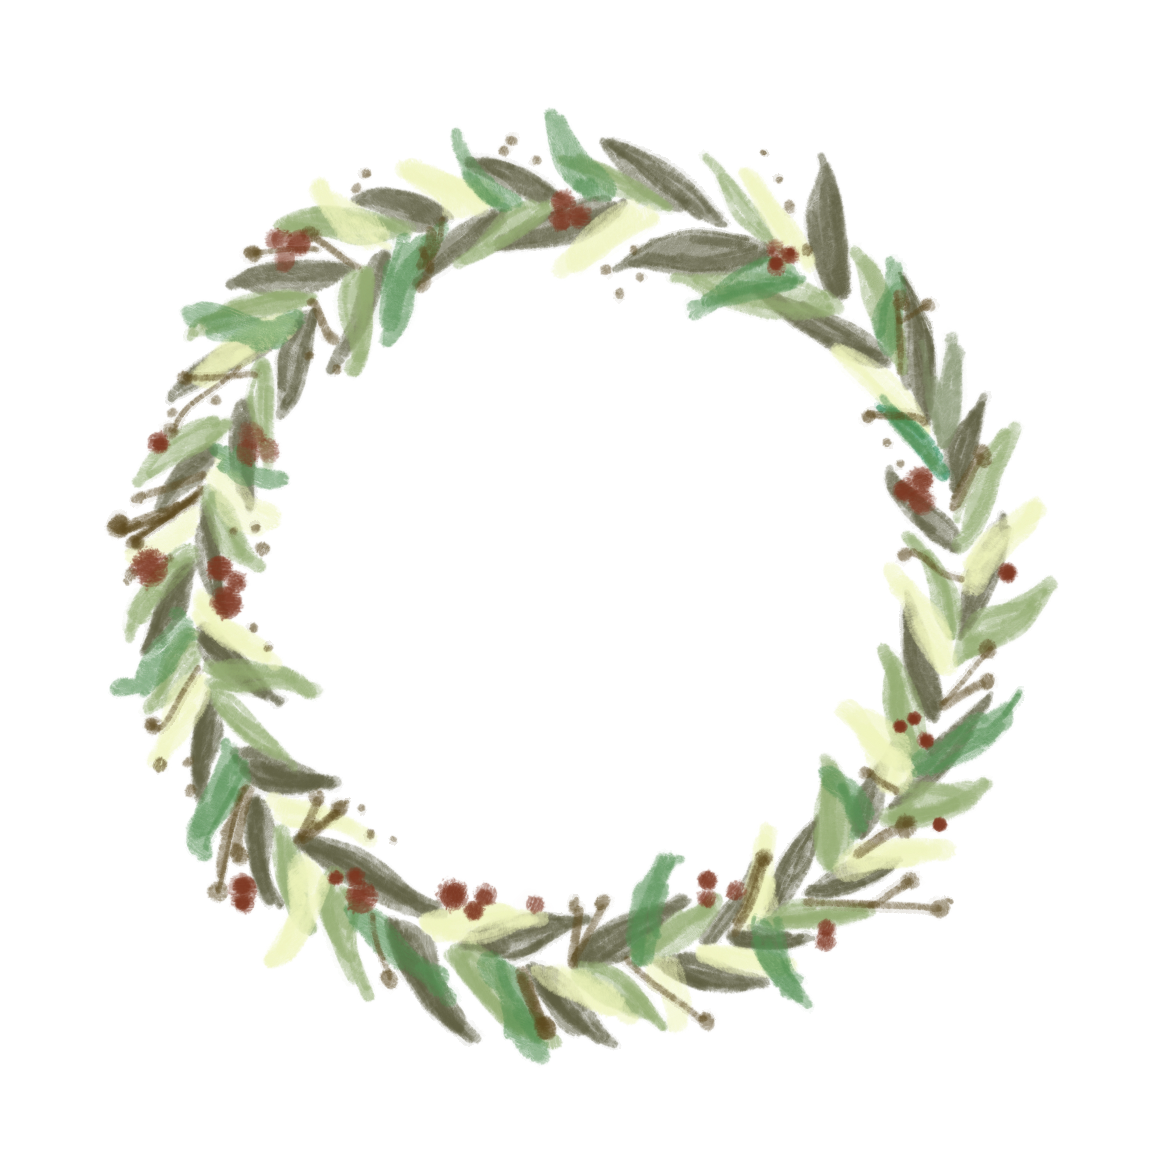 clip art download Painted graphic free download. Transparent wreath